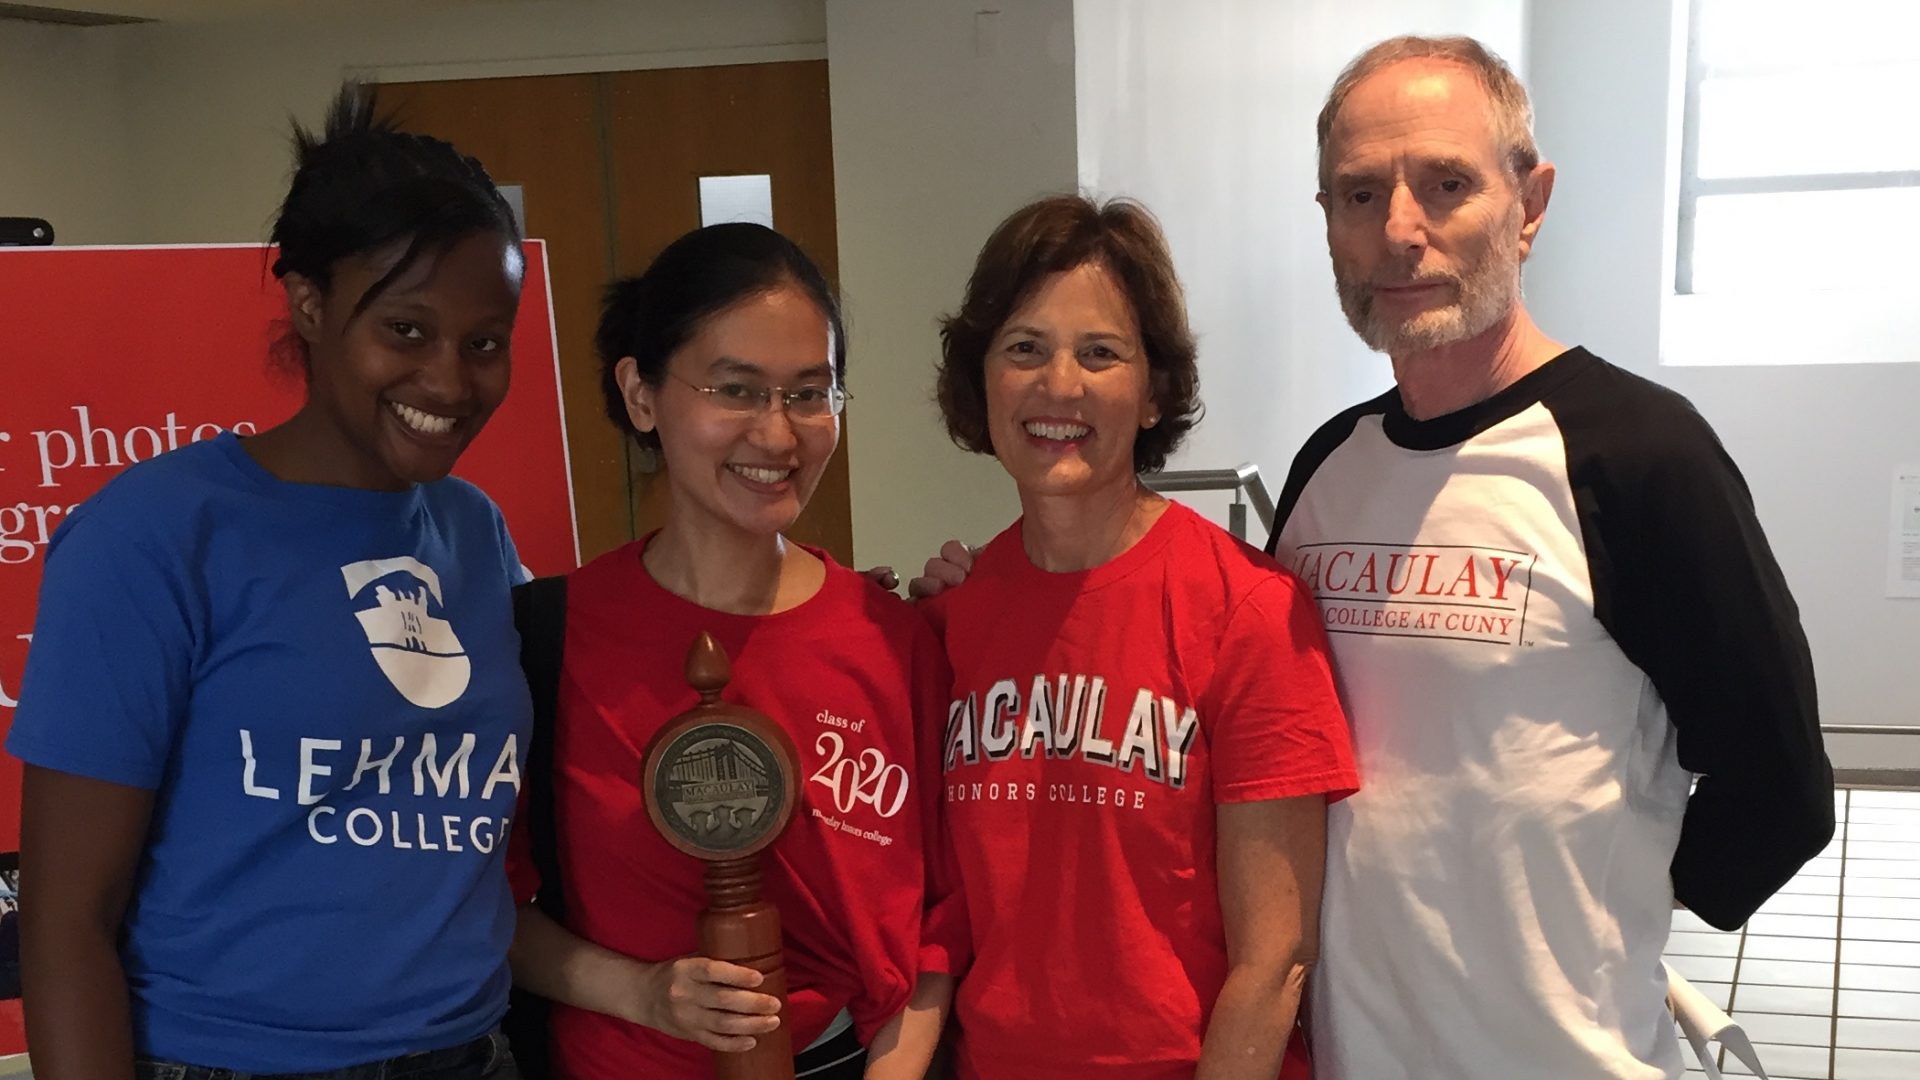 Advising and Support, Dean Mary Pearl with student award winners